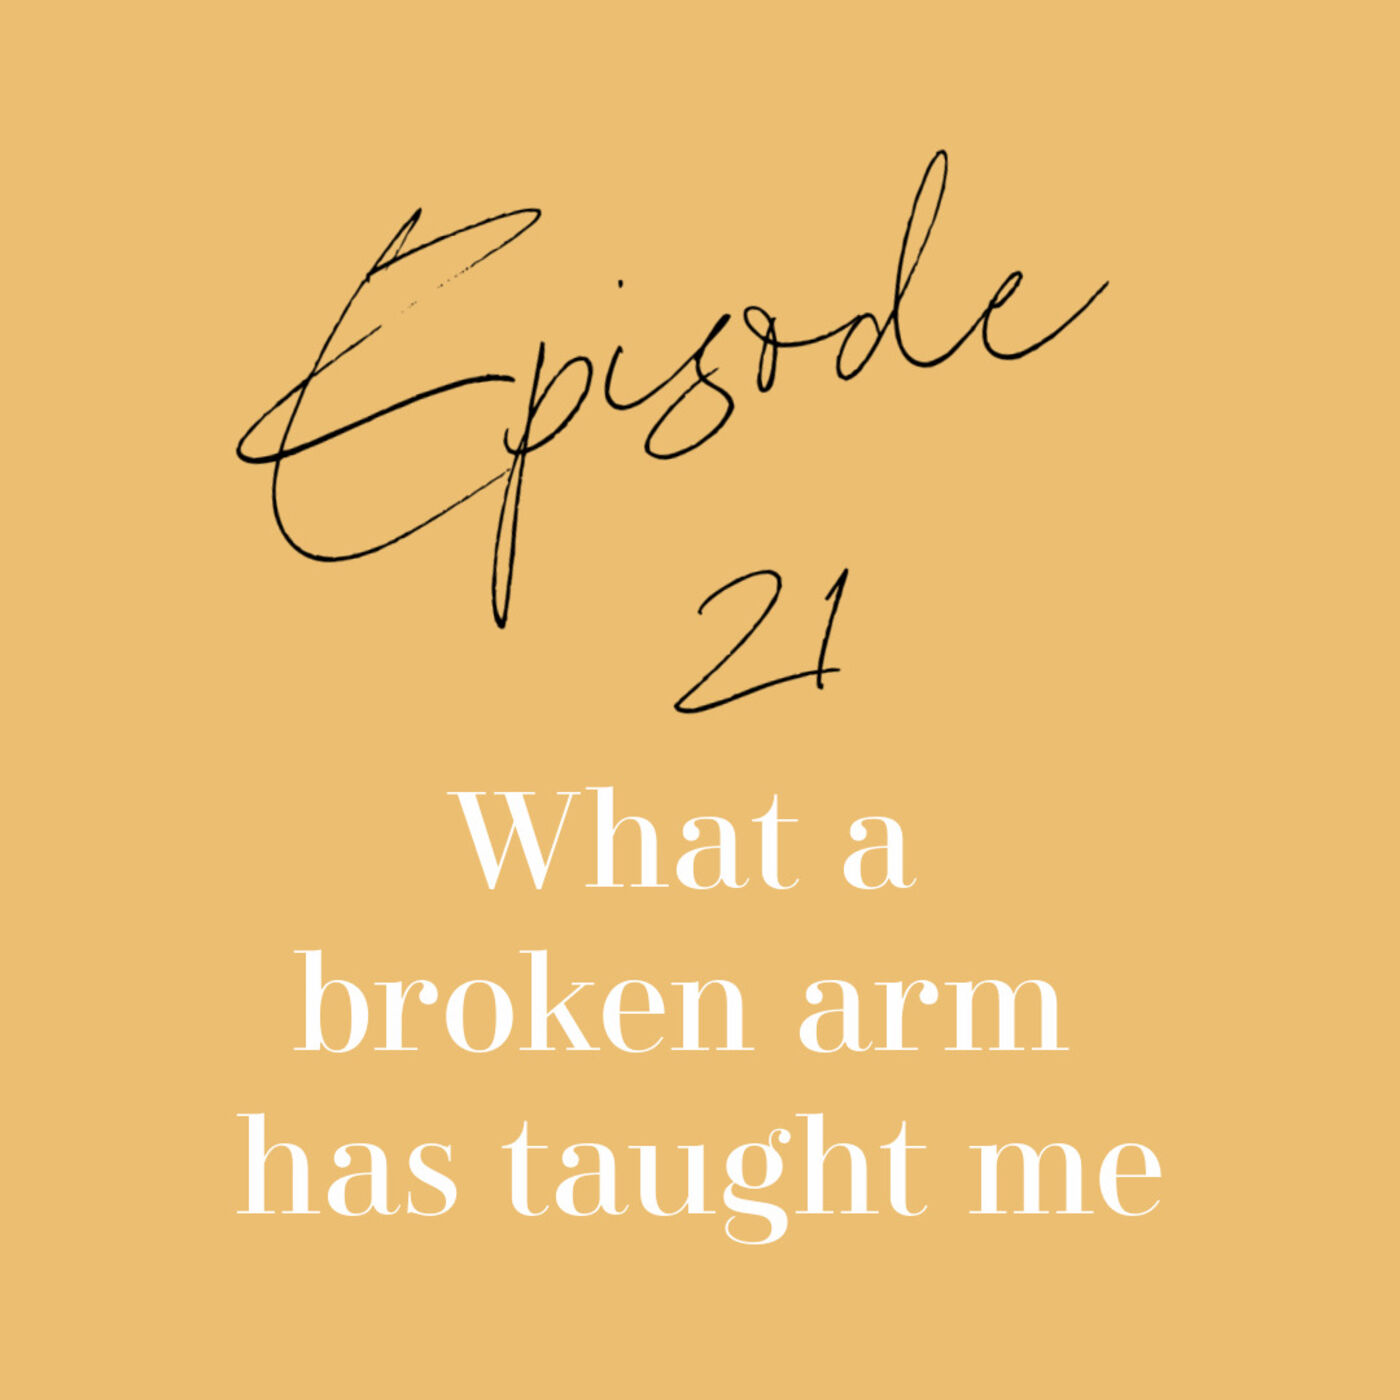 Episode 21: What a broken arm has taught me